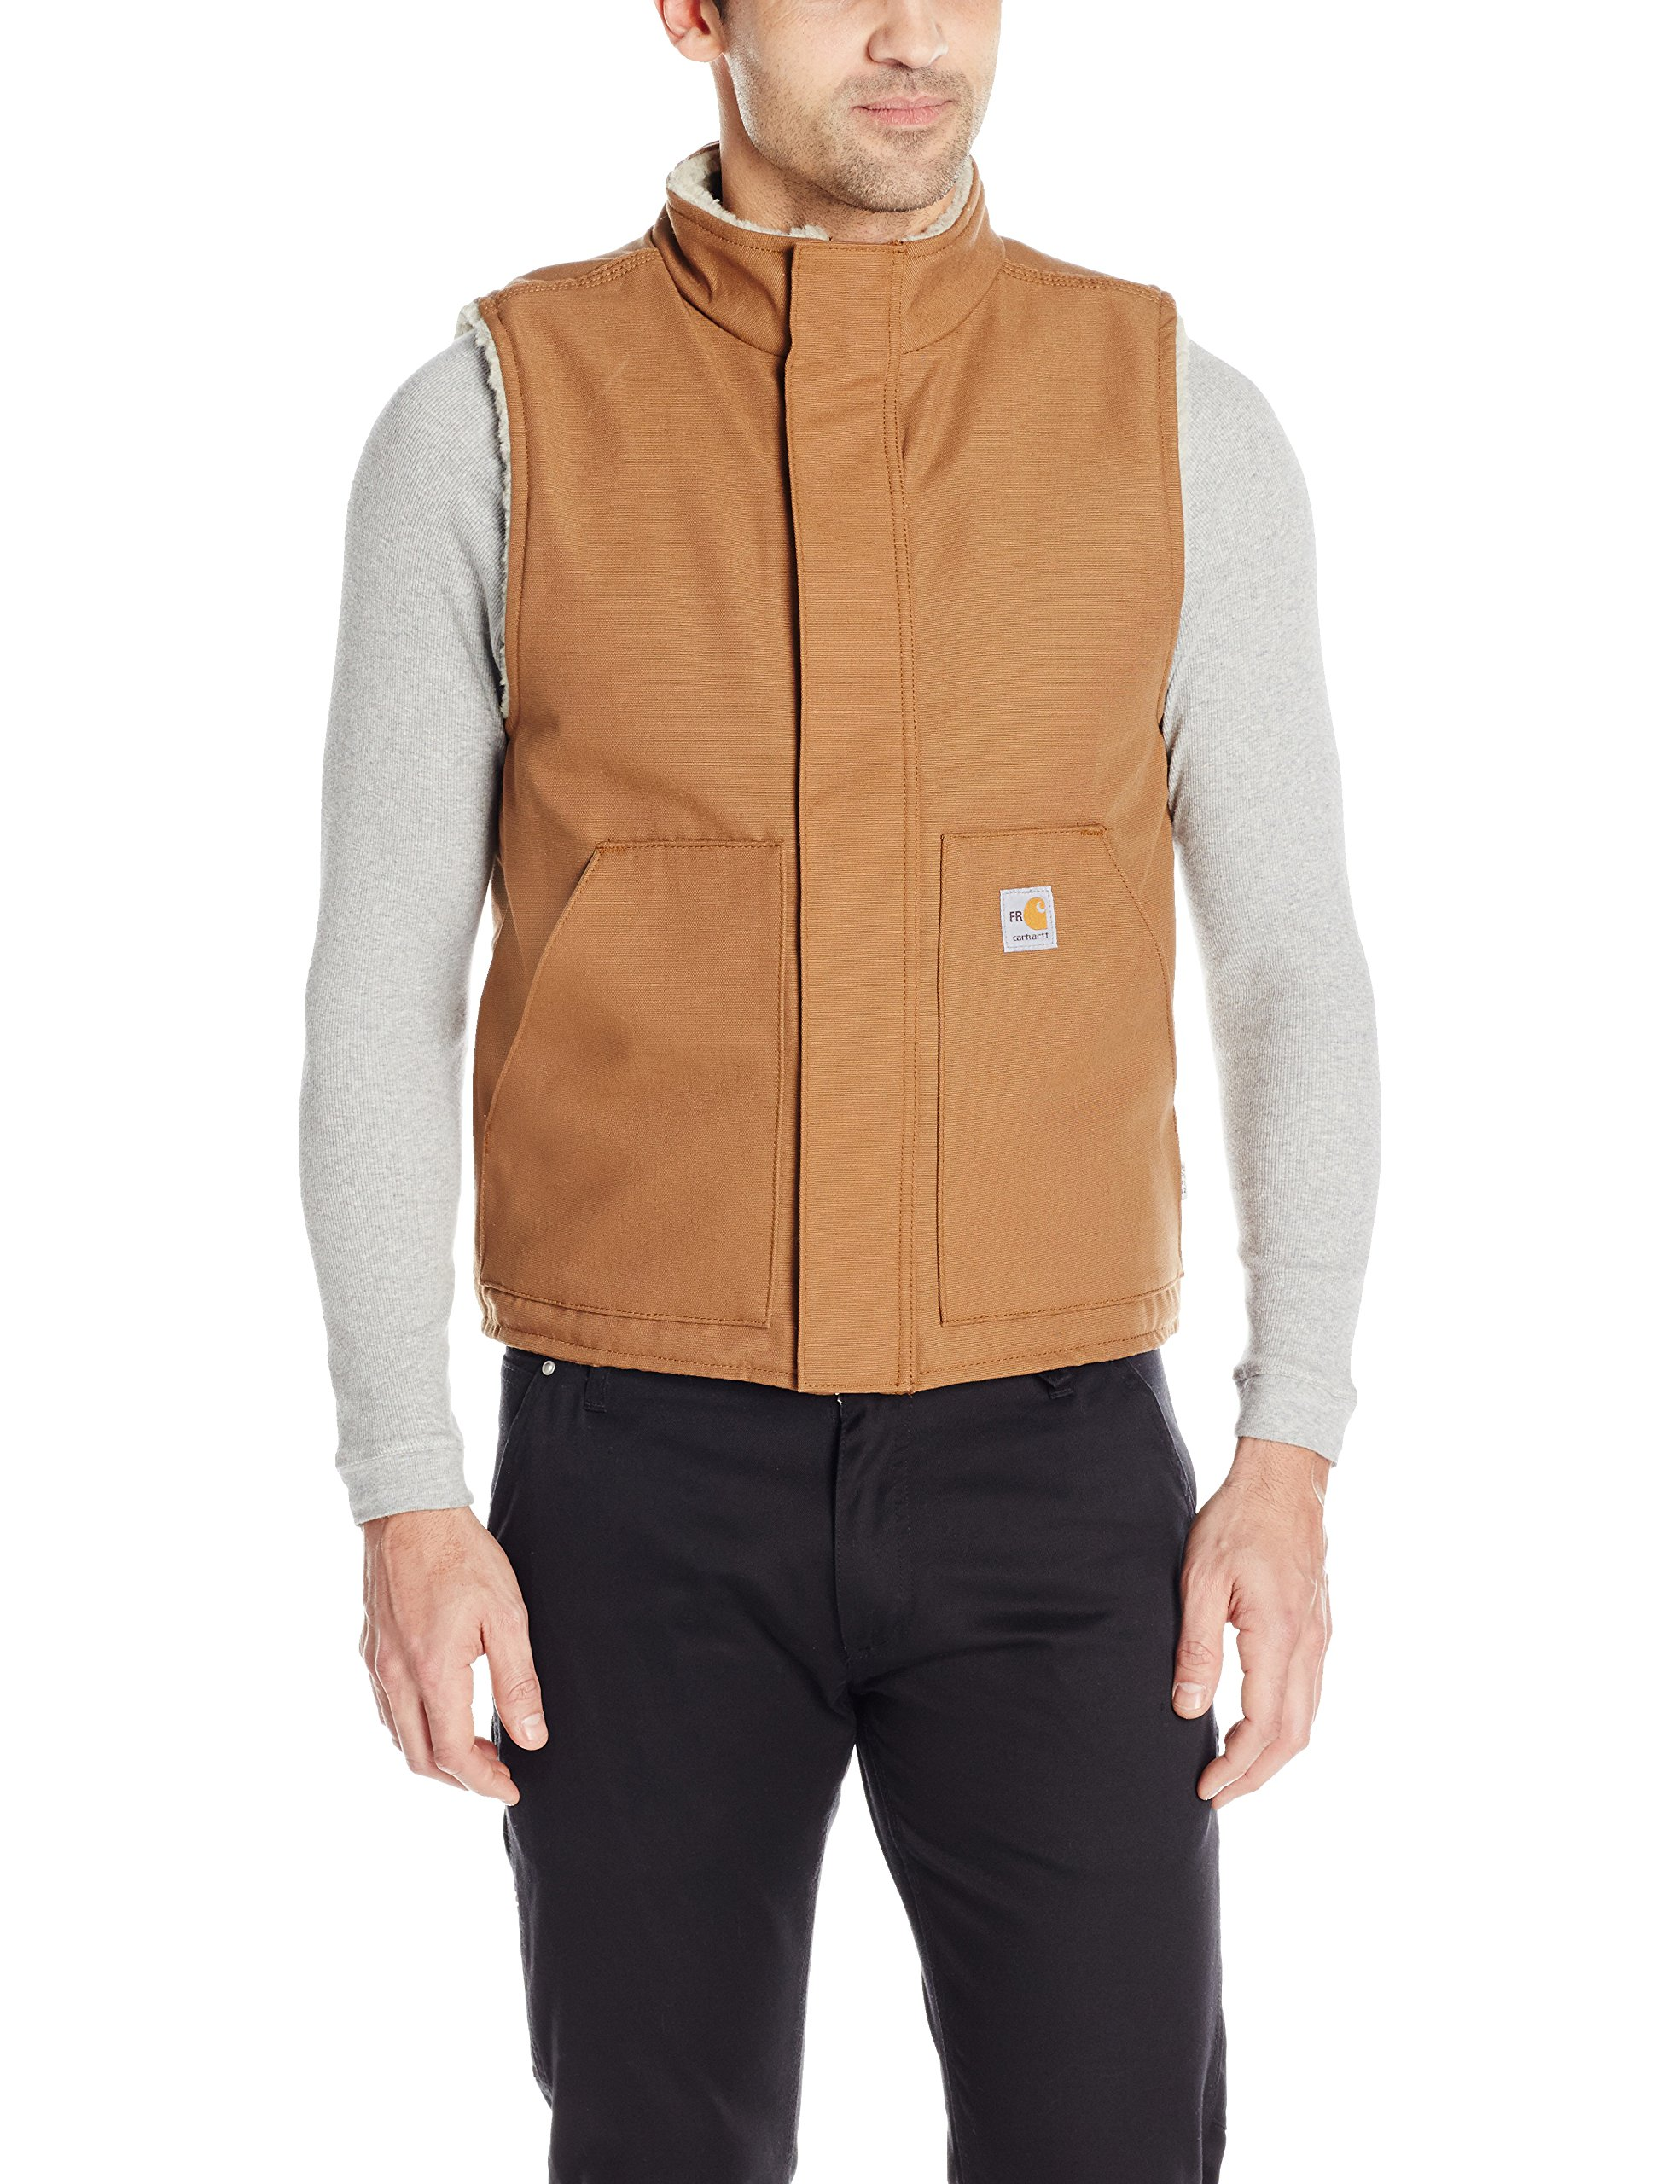 Carhartt Men's Flame Resistant Mock Neck Sherpa Lined Vest, Carhartt Brown, 2X-Large by Carhartt